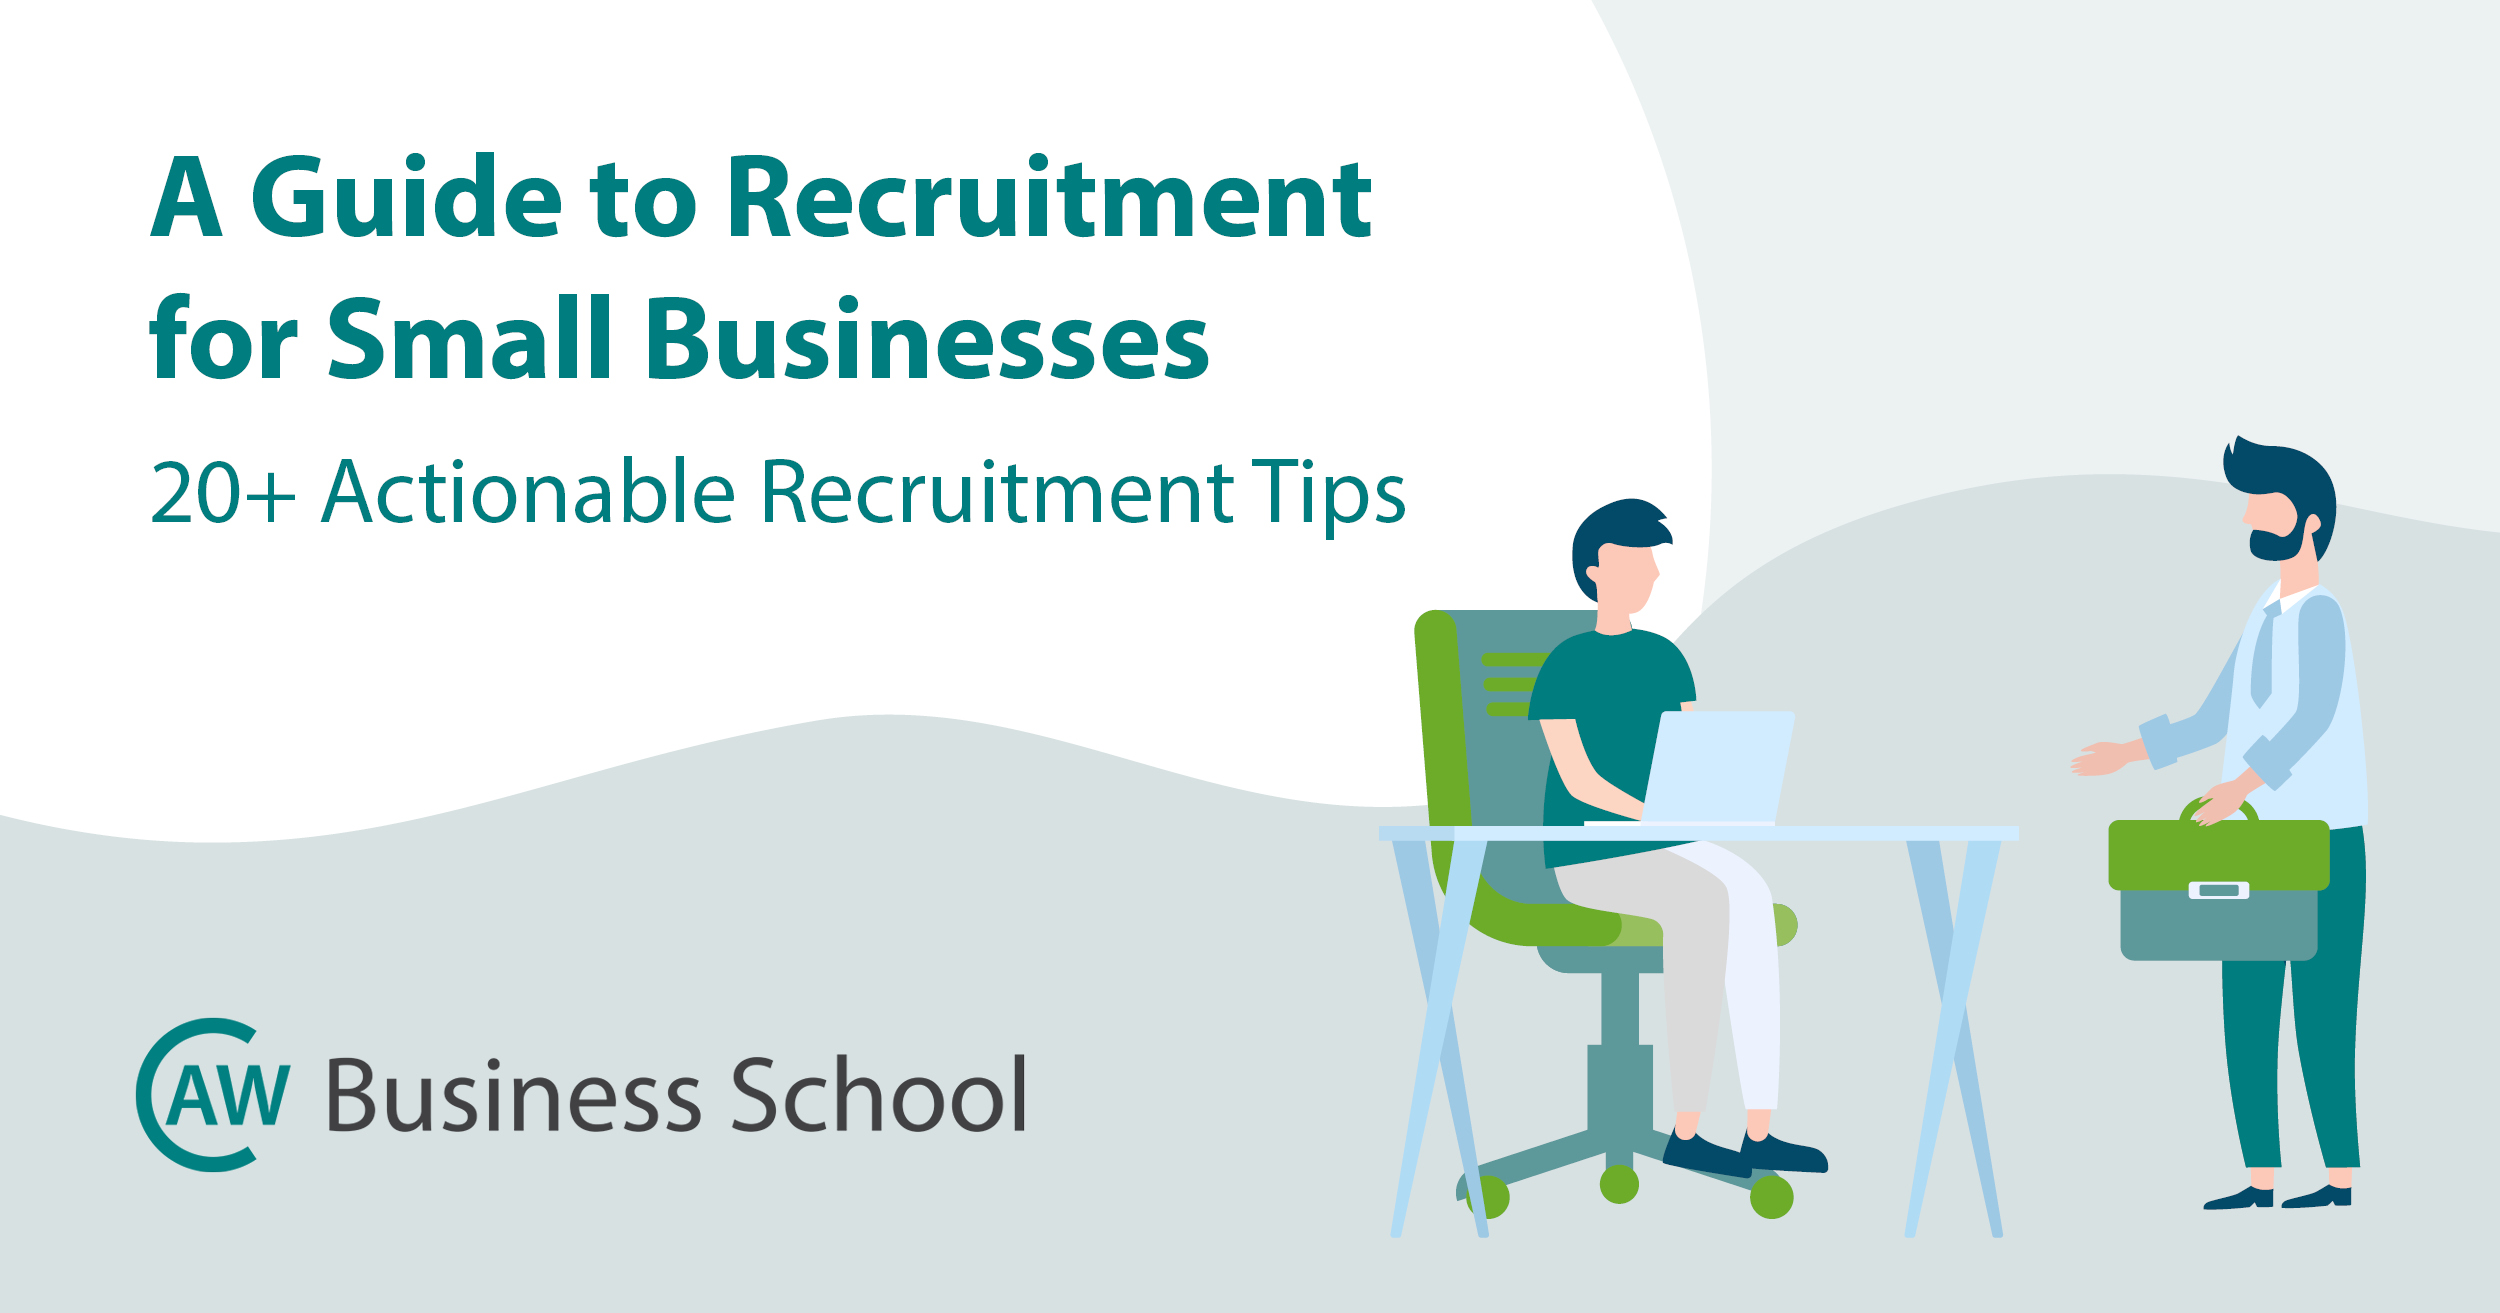 A Guide to Recruitment for Small Businesses (20+ Actionable Recruitment Tips)